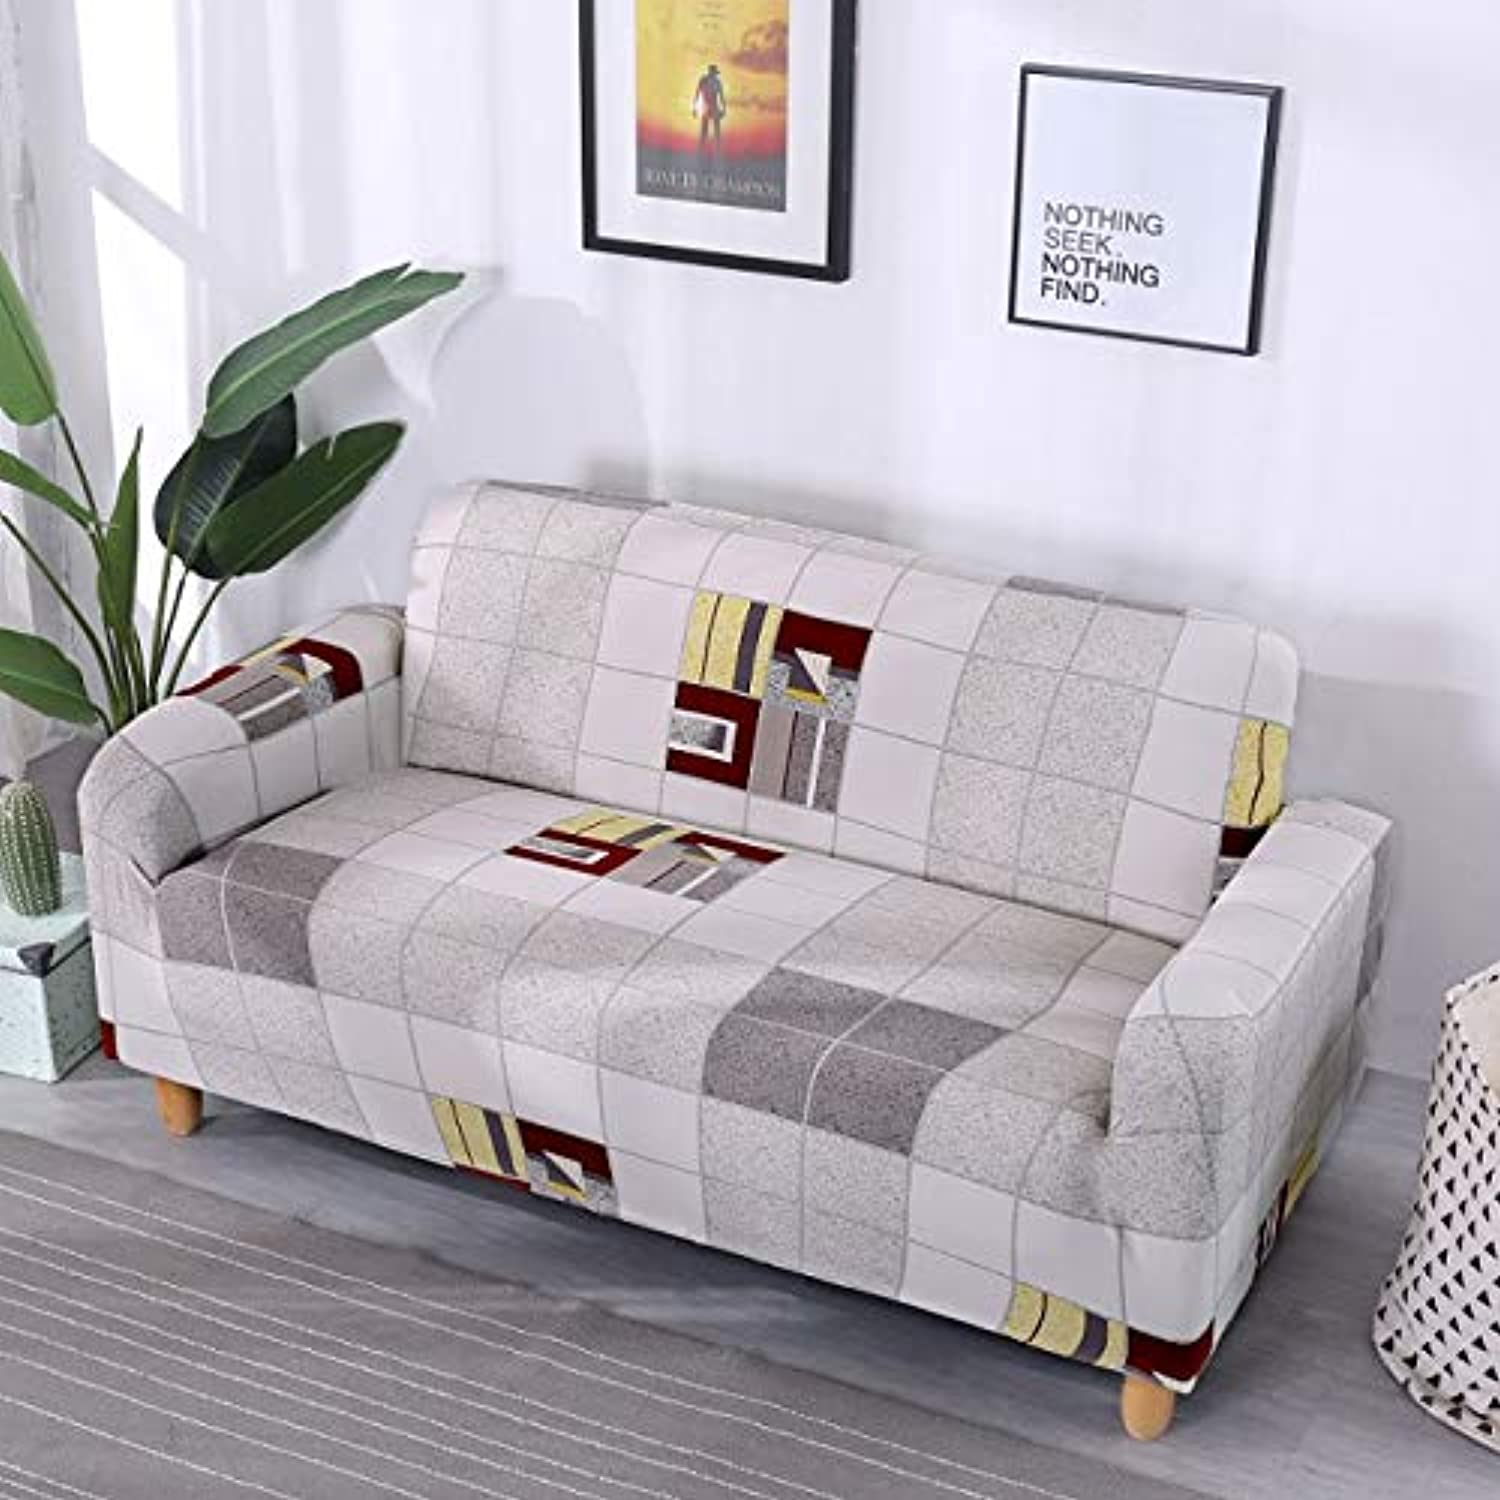 Sofa Slipcovers Tight wrap All-Inclusive Slip-Resistant sectional Elastic Full Sofa Cover S M L XL Size   20029, S 90-140cm